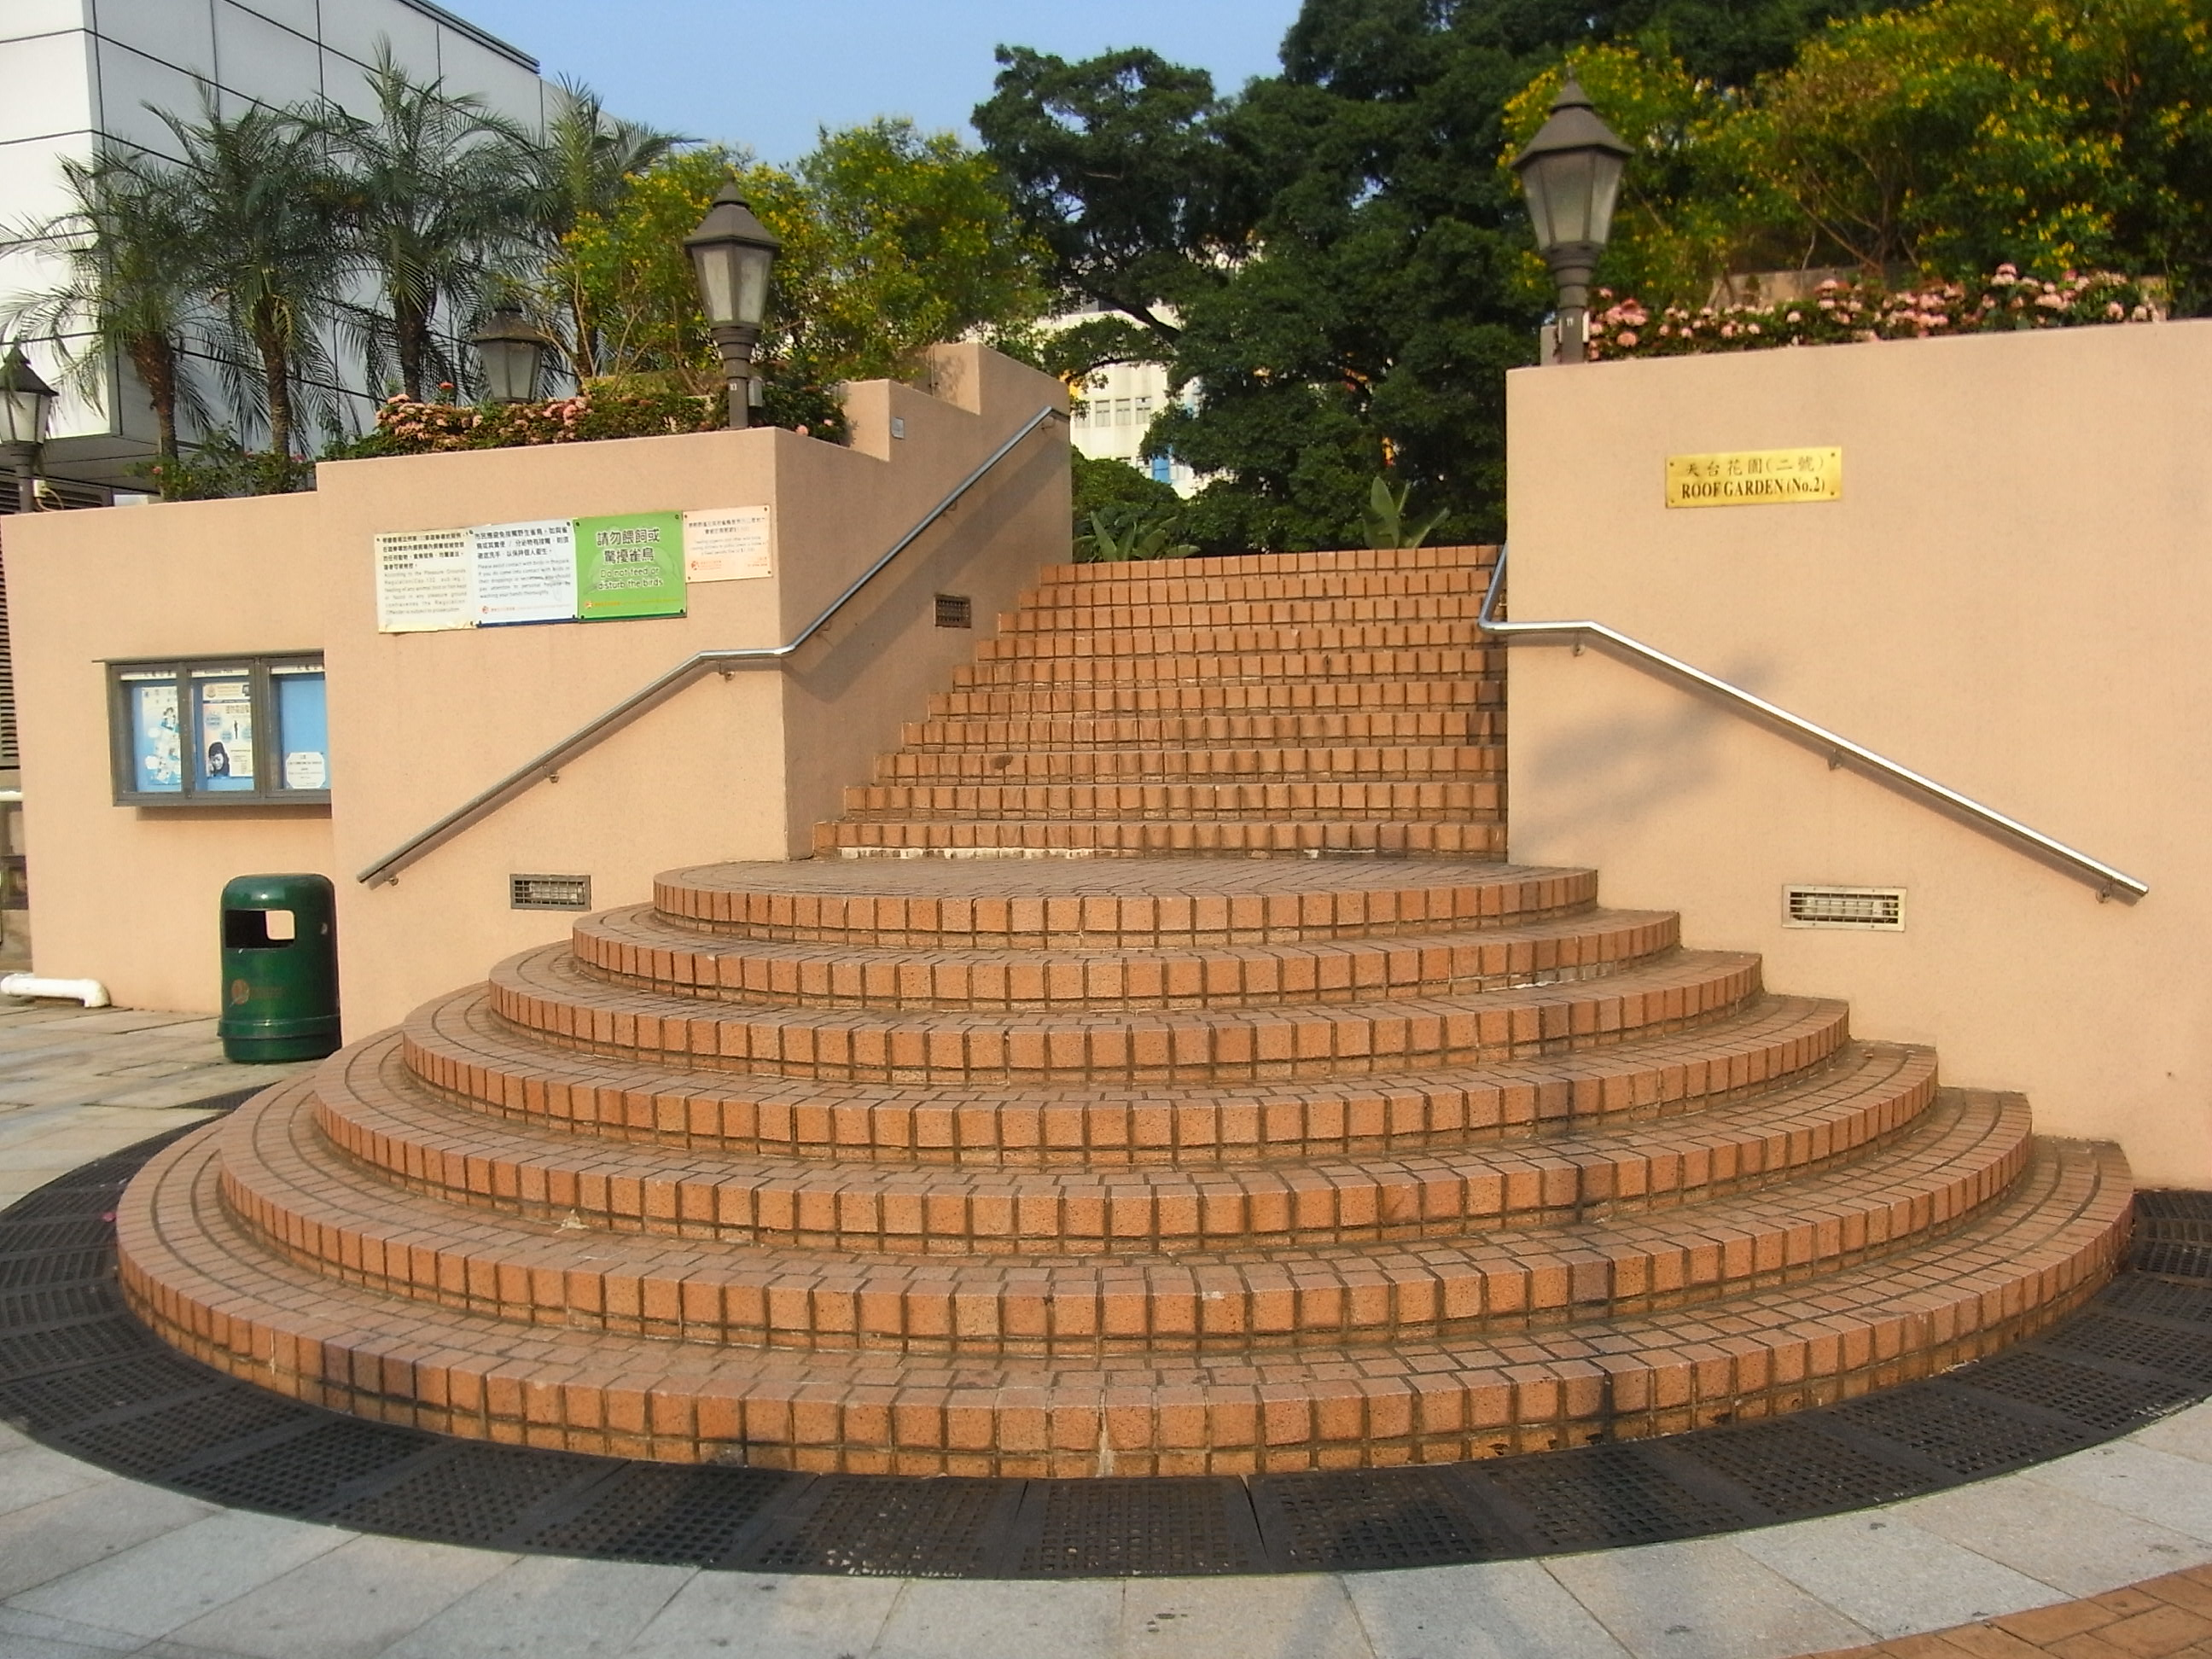 Charming File:HK Kln Park Roof Top Garden Outside Stairs Oct 2012.JPG